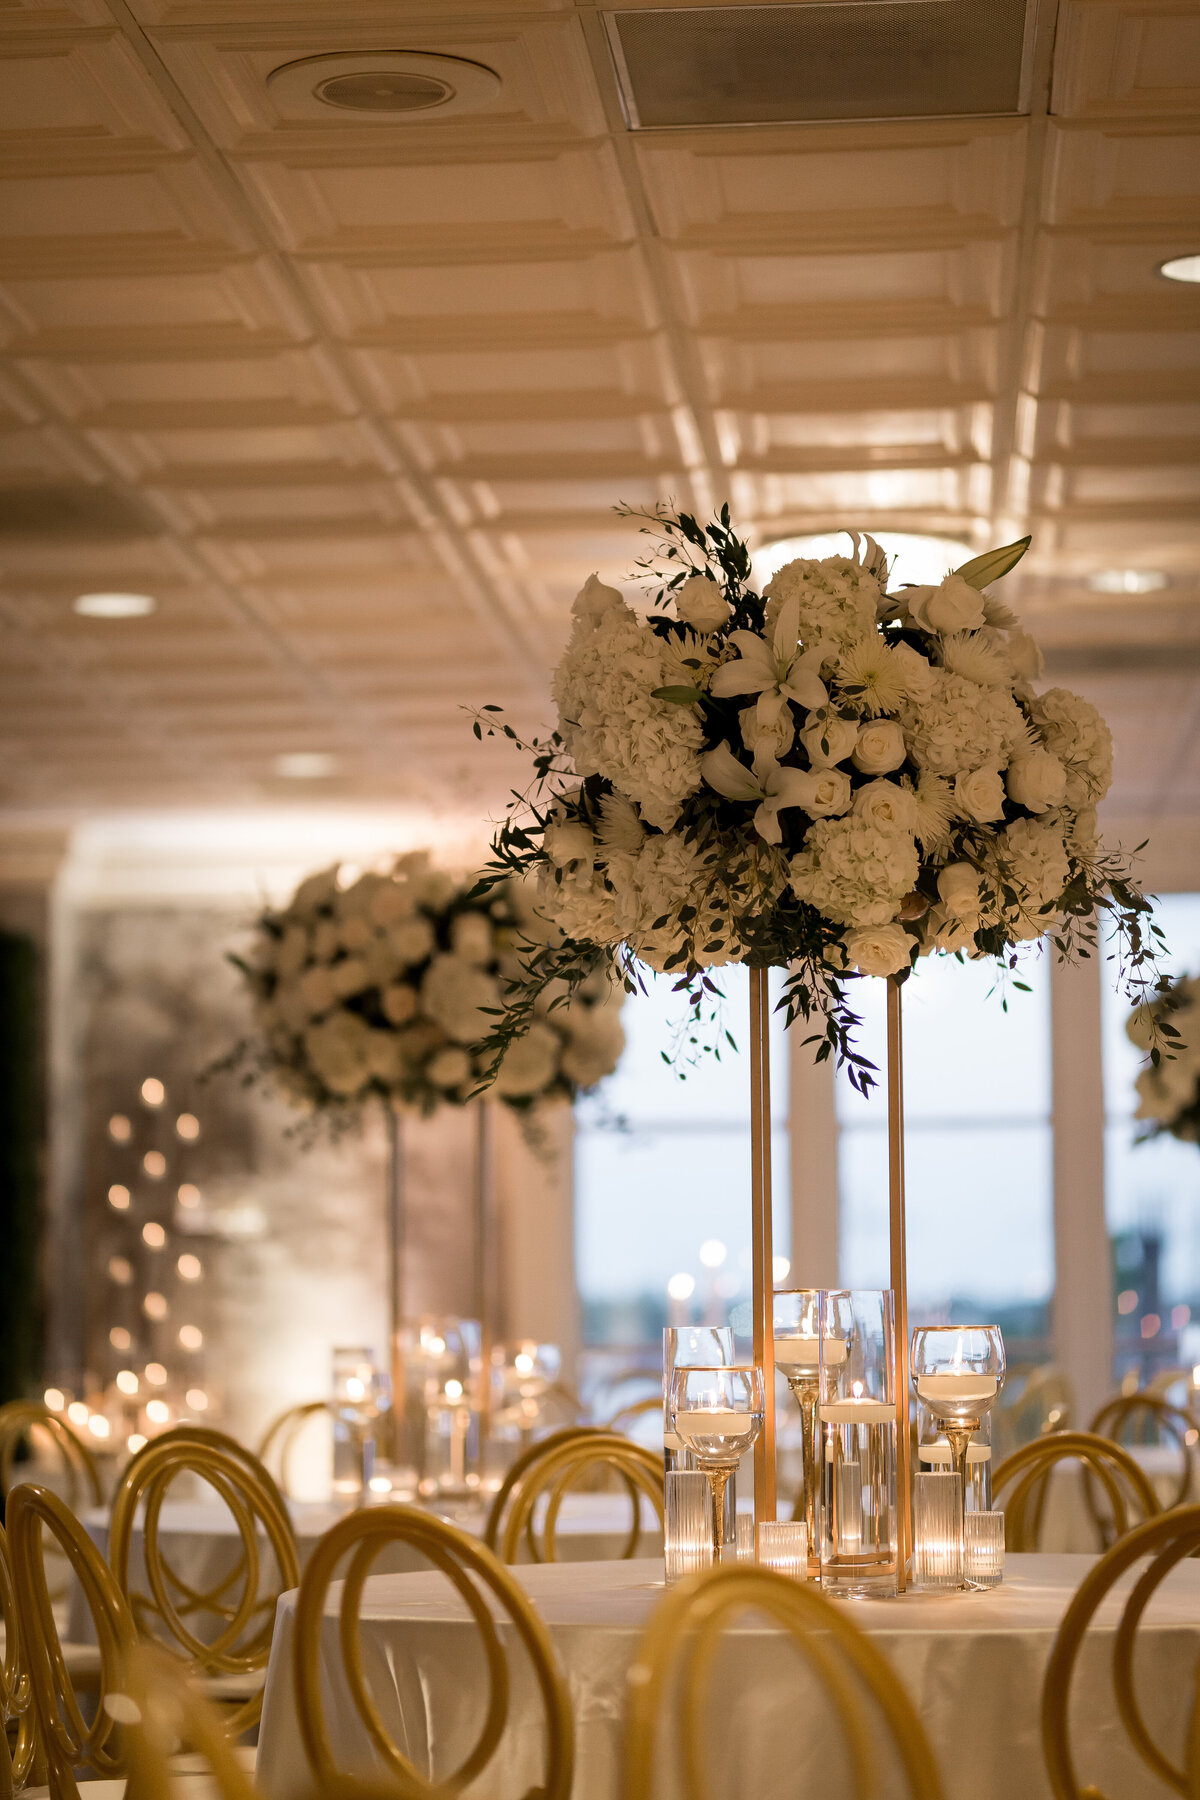 Lavishly Chic Designs Weddings Events Wedding Planning Coordination Designs New Orleans Louisiana Southern Destination South Delia King48